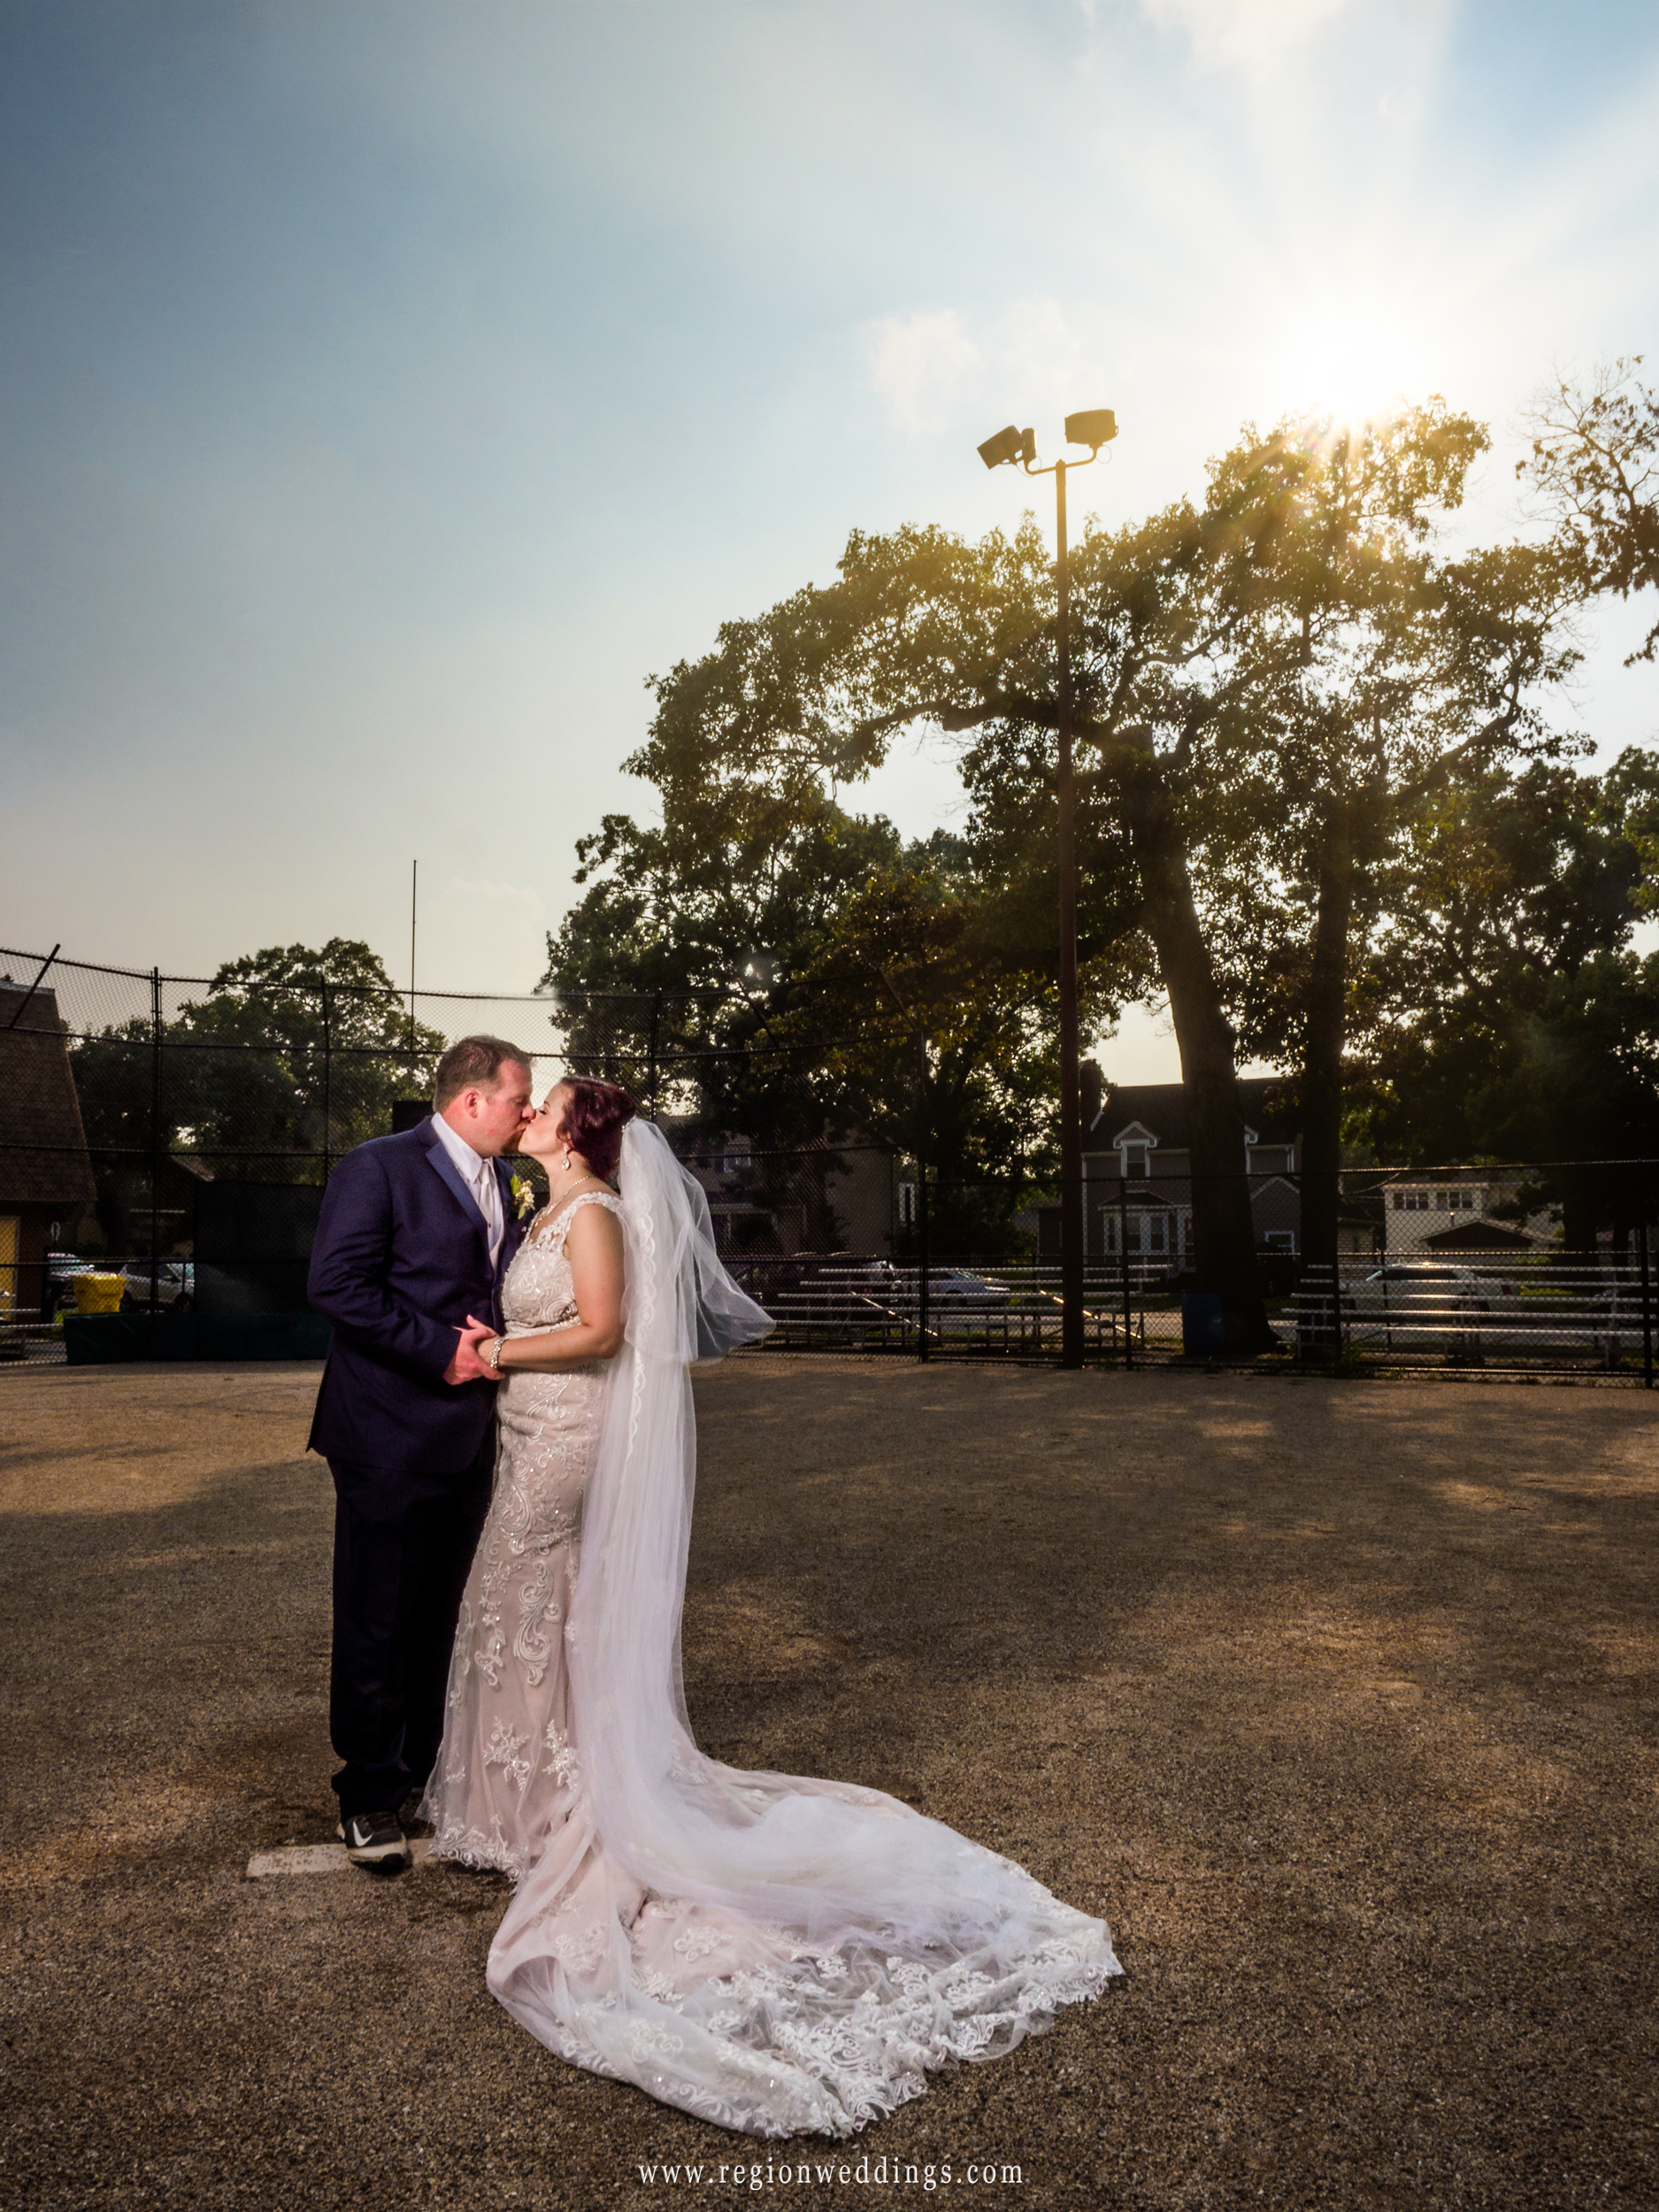 Bride and groom share a kiss on the pitcher's mound.